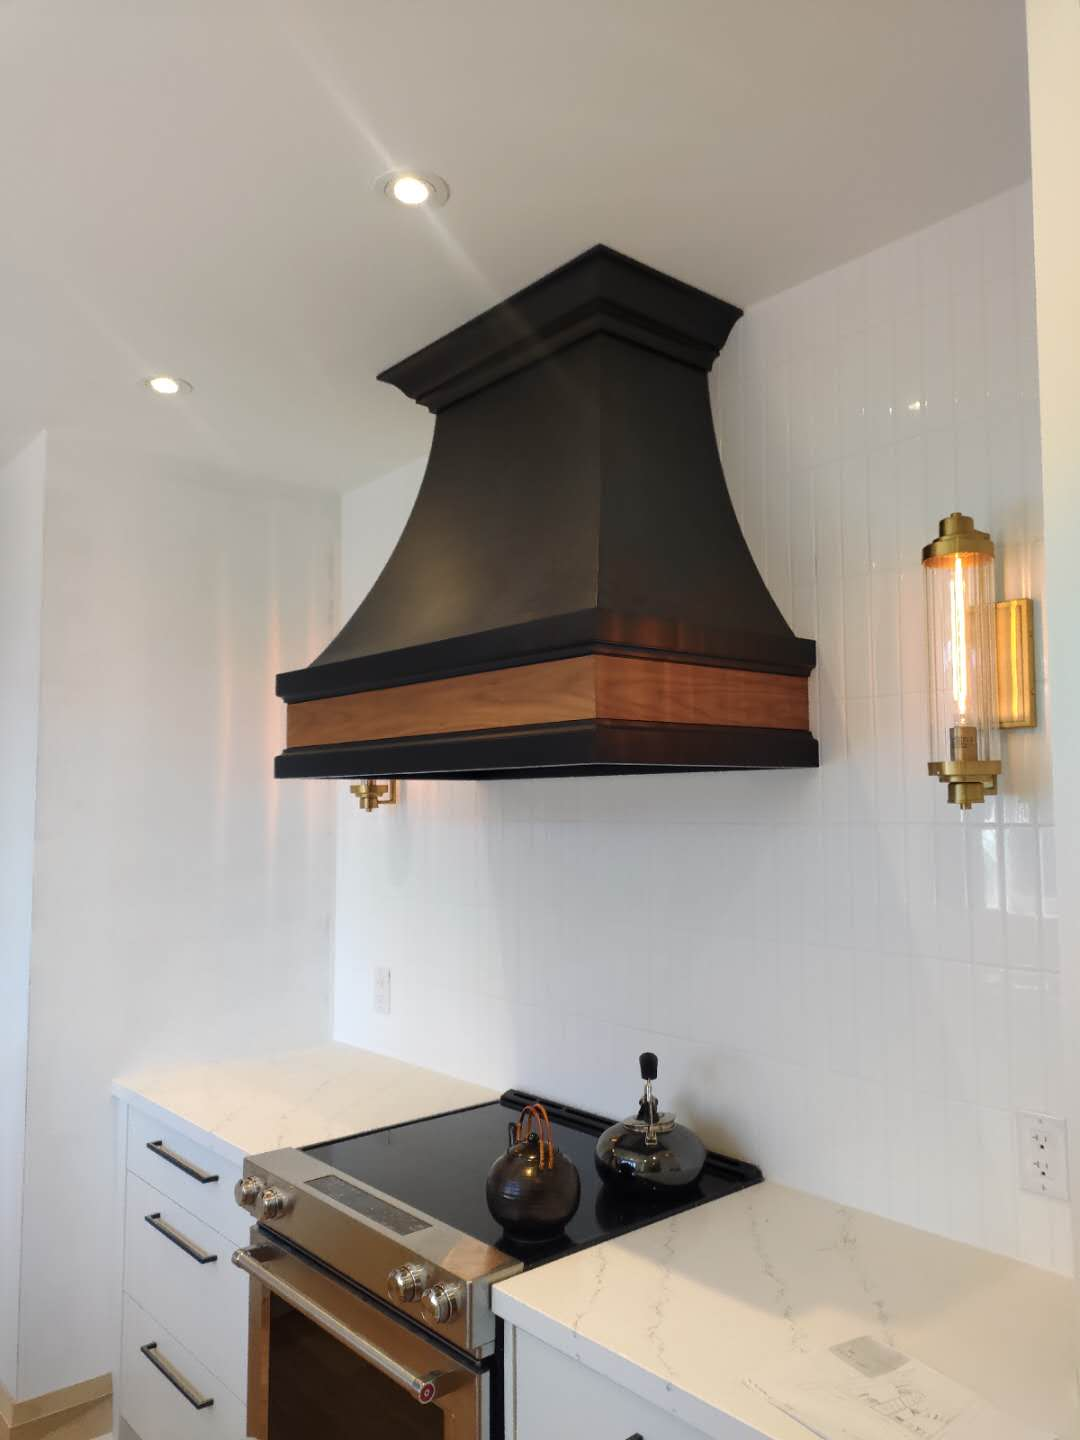 Special Designed Dark wooden kitchen ventilator